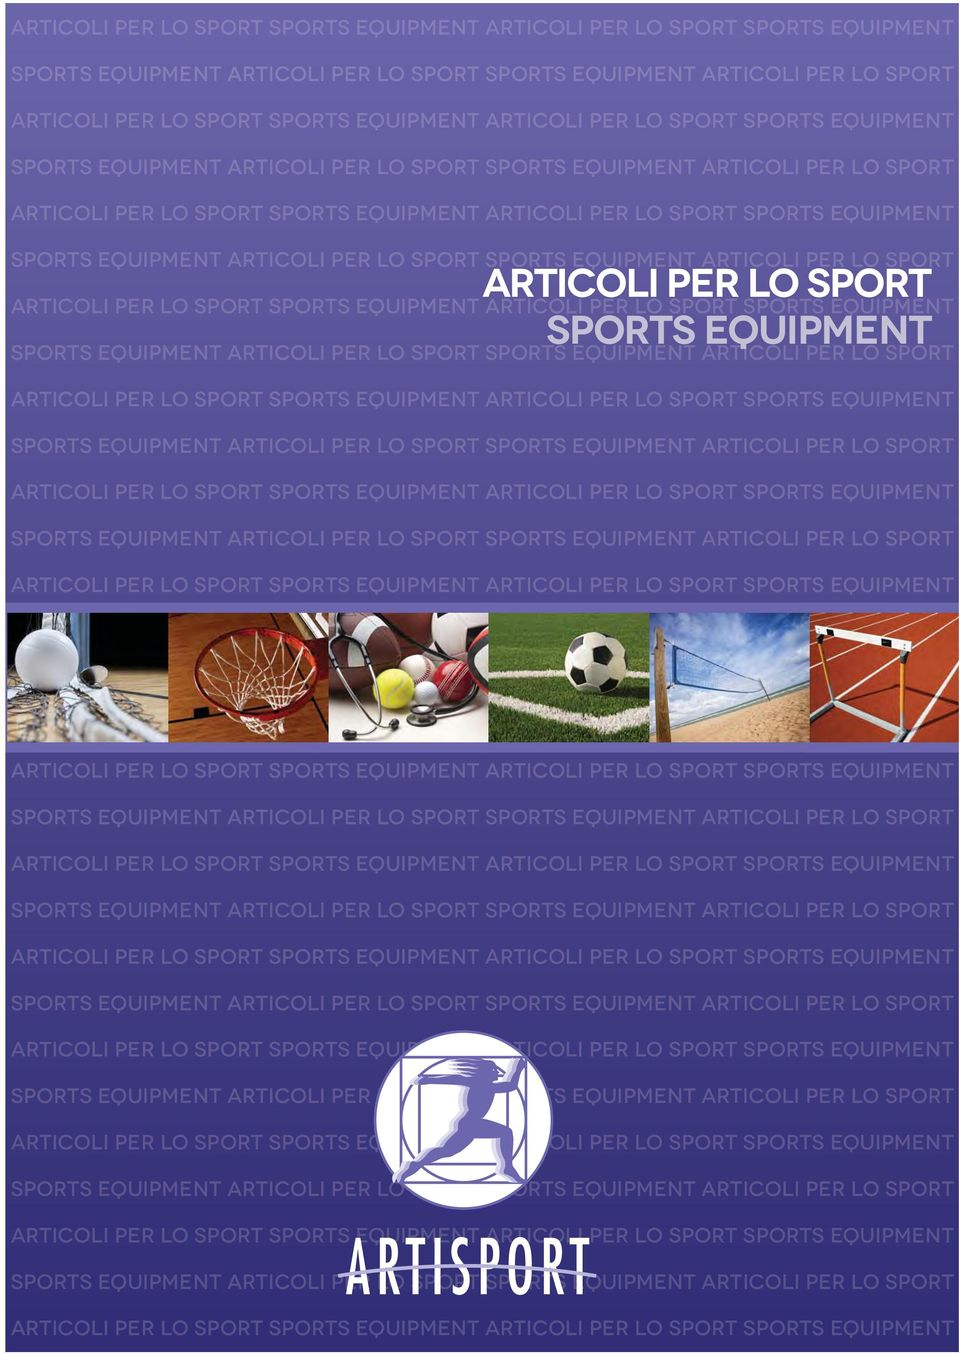 SPORTS EQUIPMENT ARTICOLI PER LO SPORT  ARTICOLI PER LO SPORT SPORTS EQUIPMENT SPORTS EQUIPMENT ARTICOLI PER LO SPORT SPORTS EQUIPMENT ARTICOLI PER LO SPOR- T ARTICOLI PER LO SPORT SPORTS EQUIPMENT